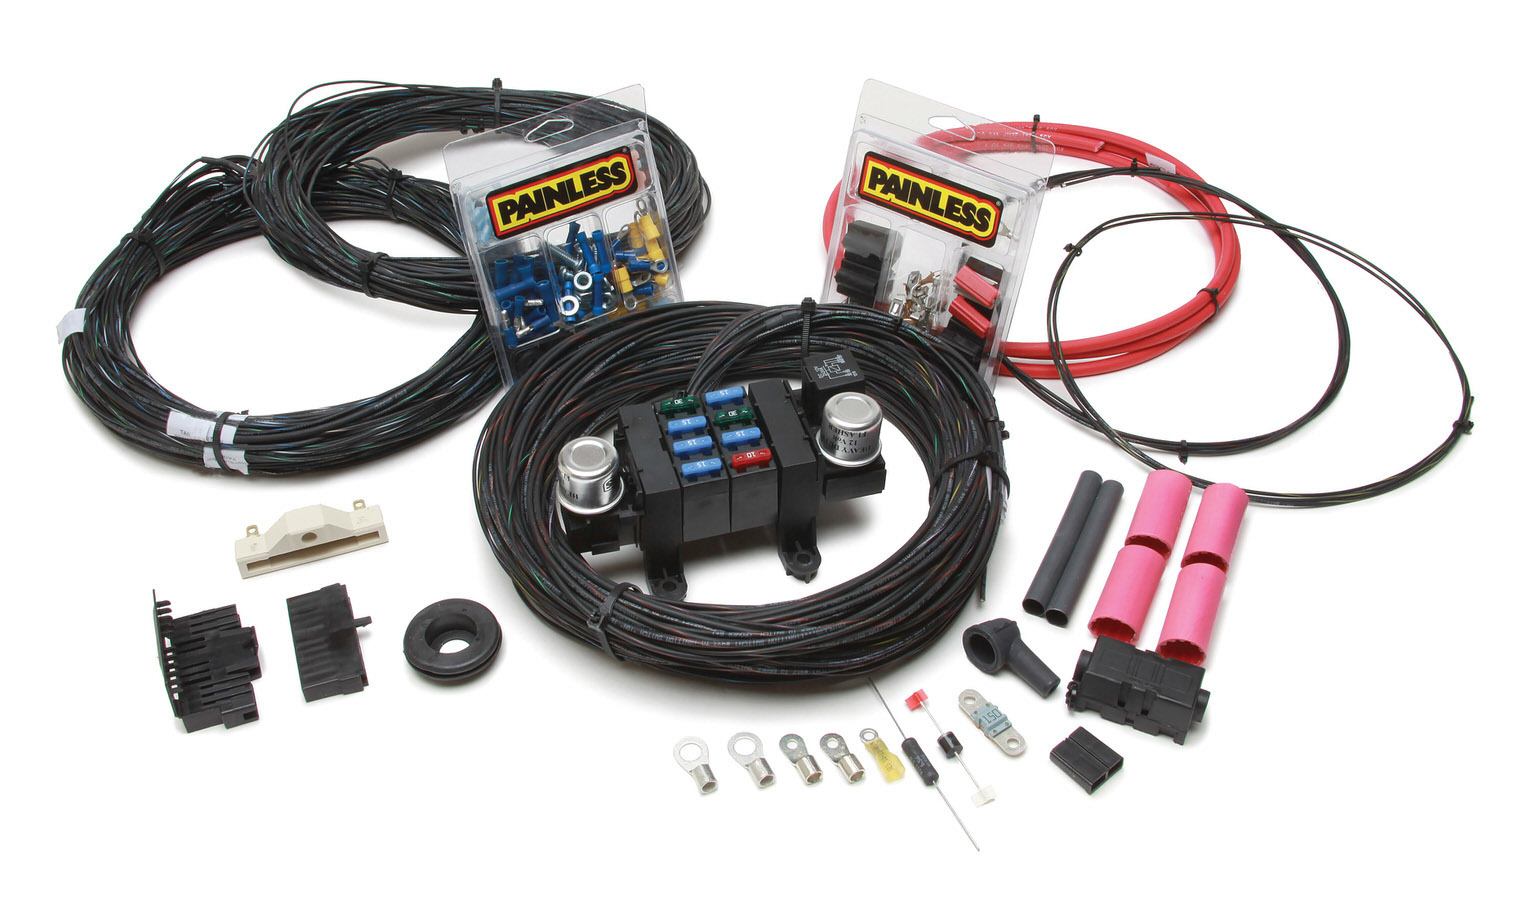 Painless Wiring 10309 Car Wiring Harness, Customizable, Complete, 17 Circuit, Universal, Kit